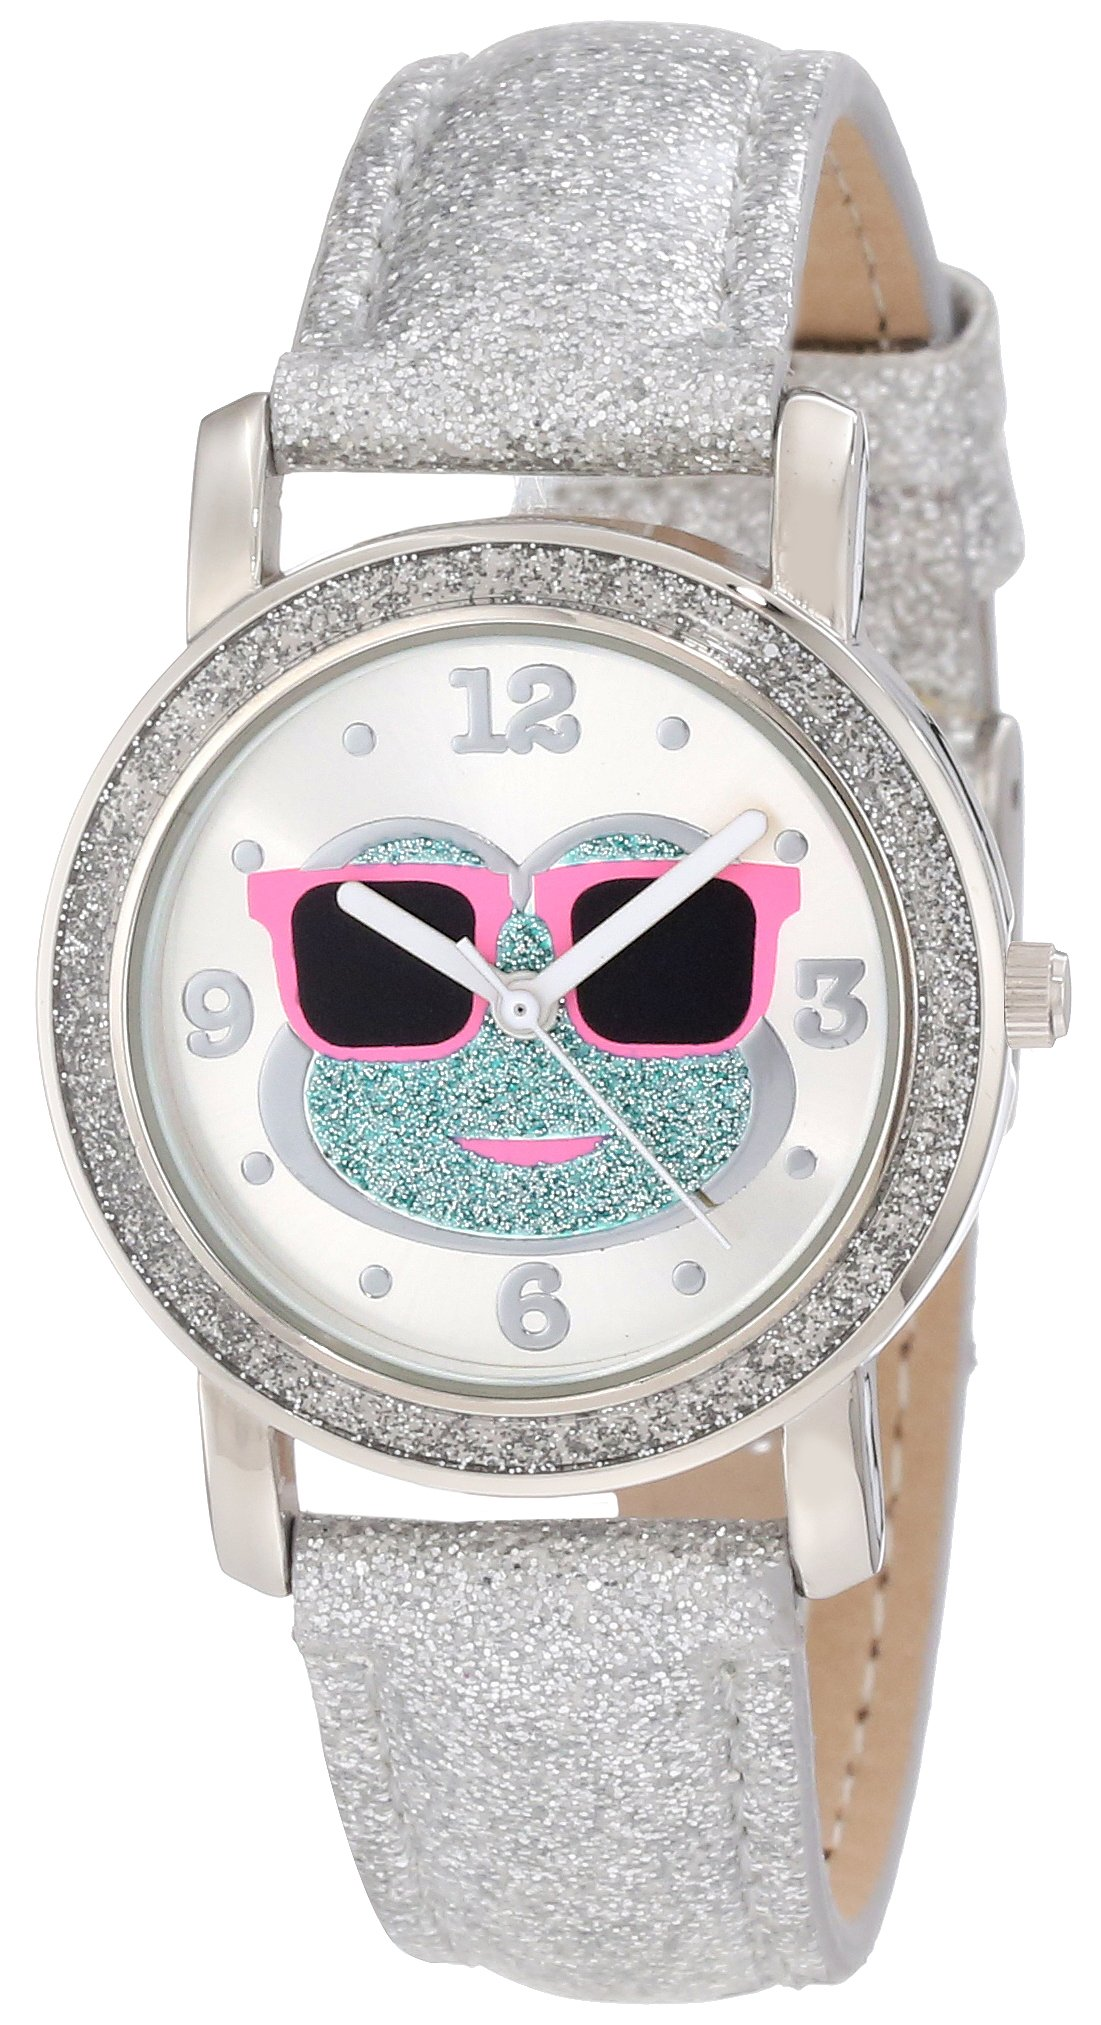 Frenzy Kids' FR464 Frog Watch with Silver Glitter Band